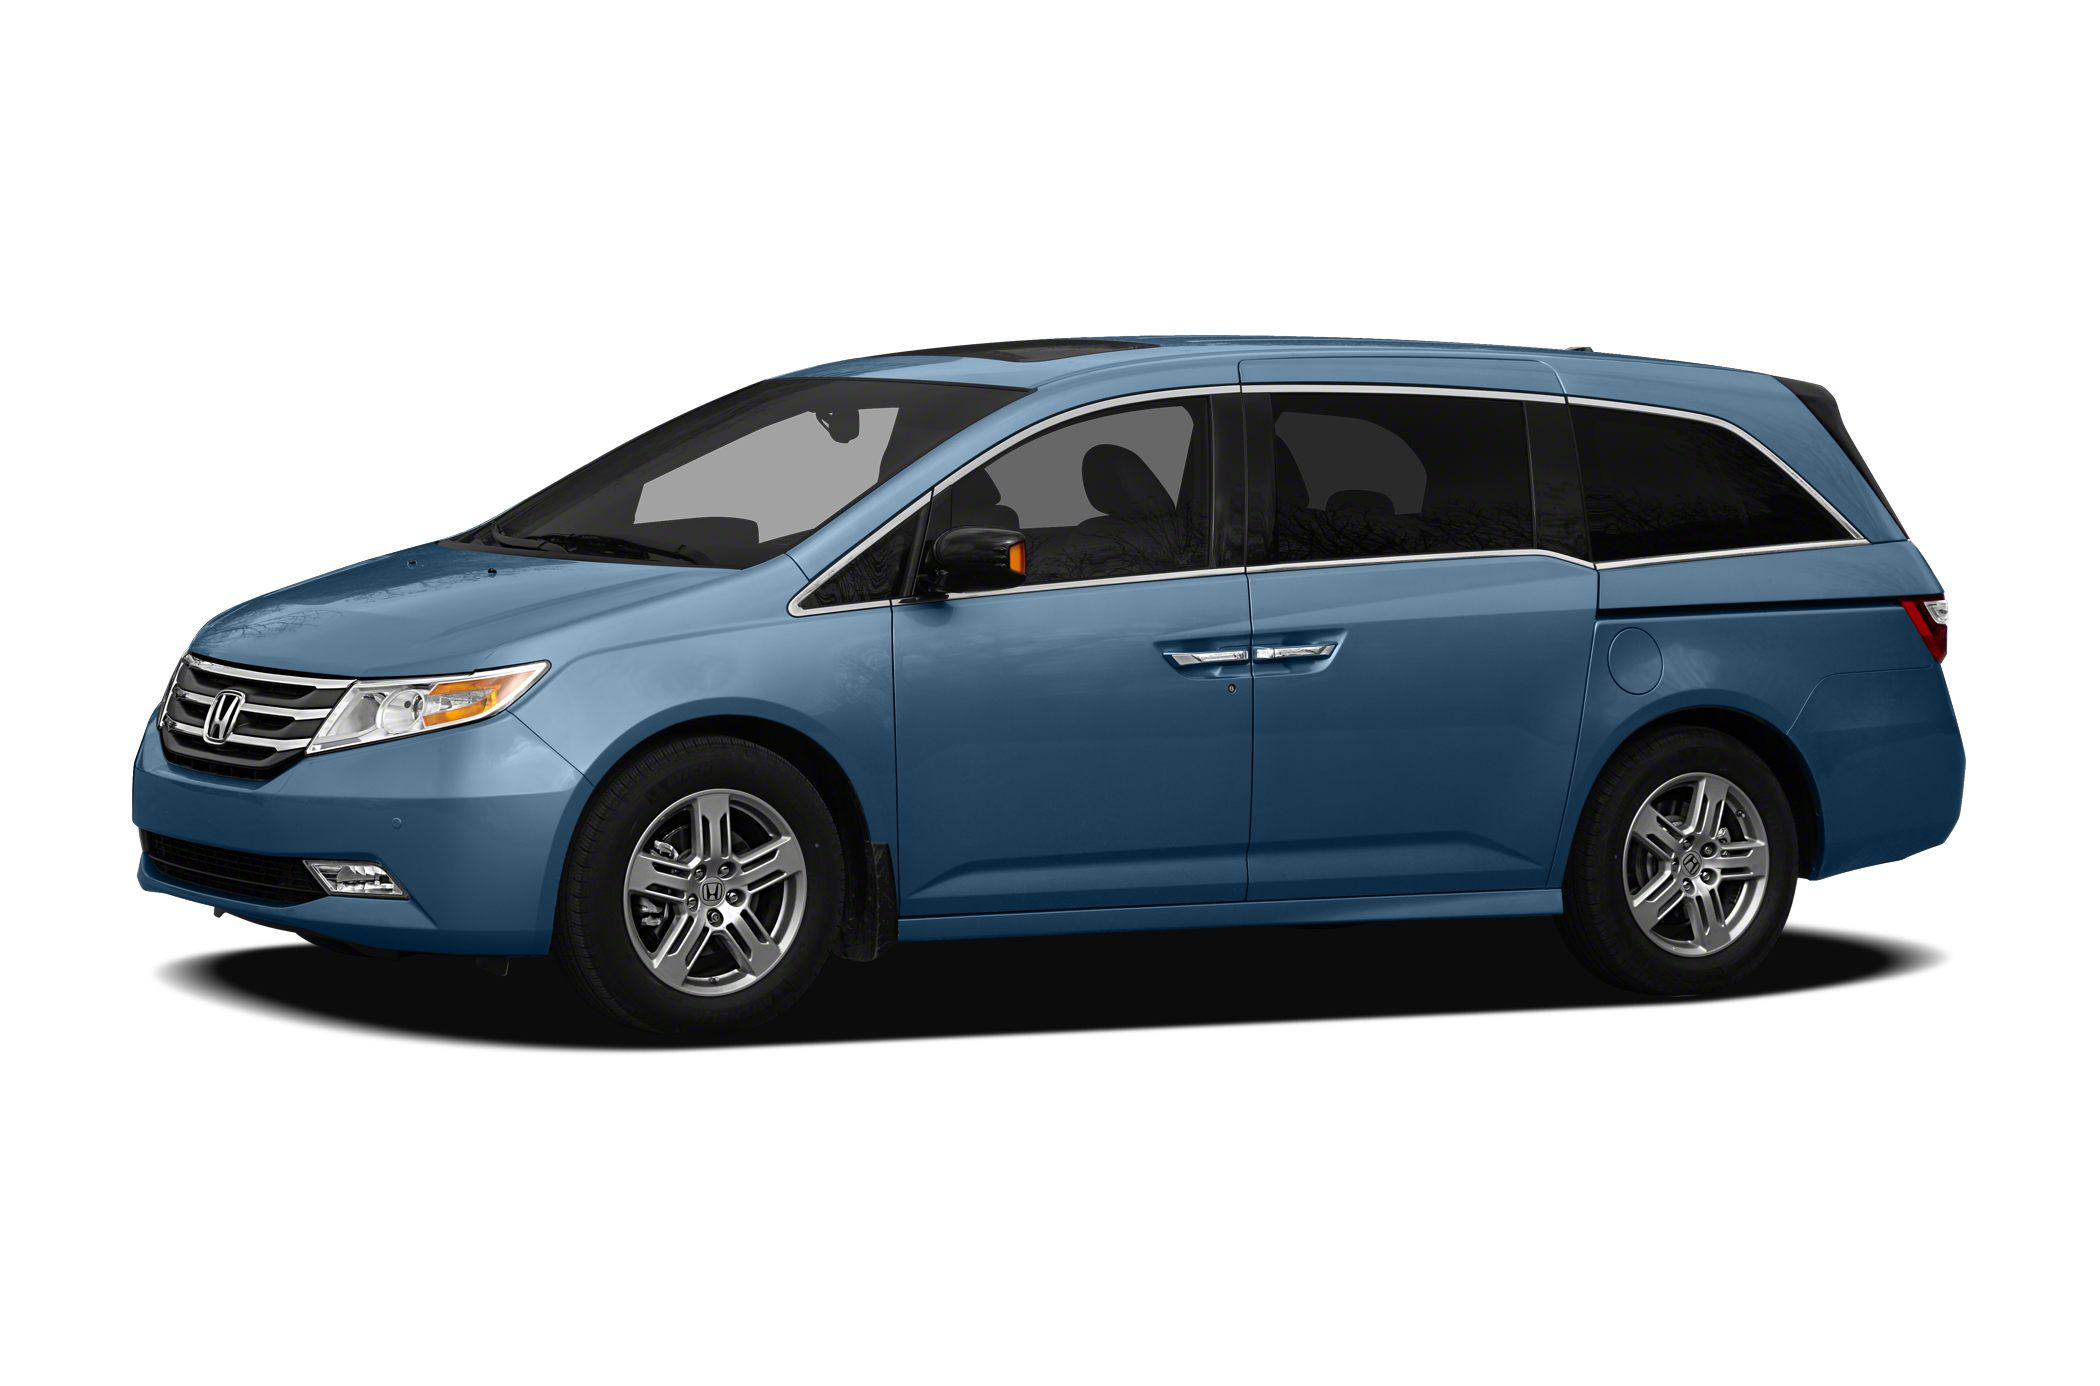 2011 Honda Odyssey Touring Elite Minivan for sale in Roanoke for $28,331 with 33,248 miles.